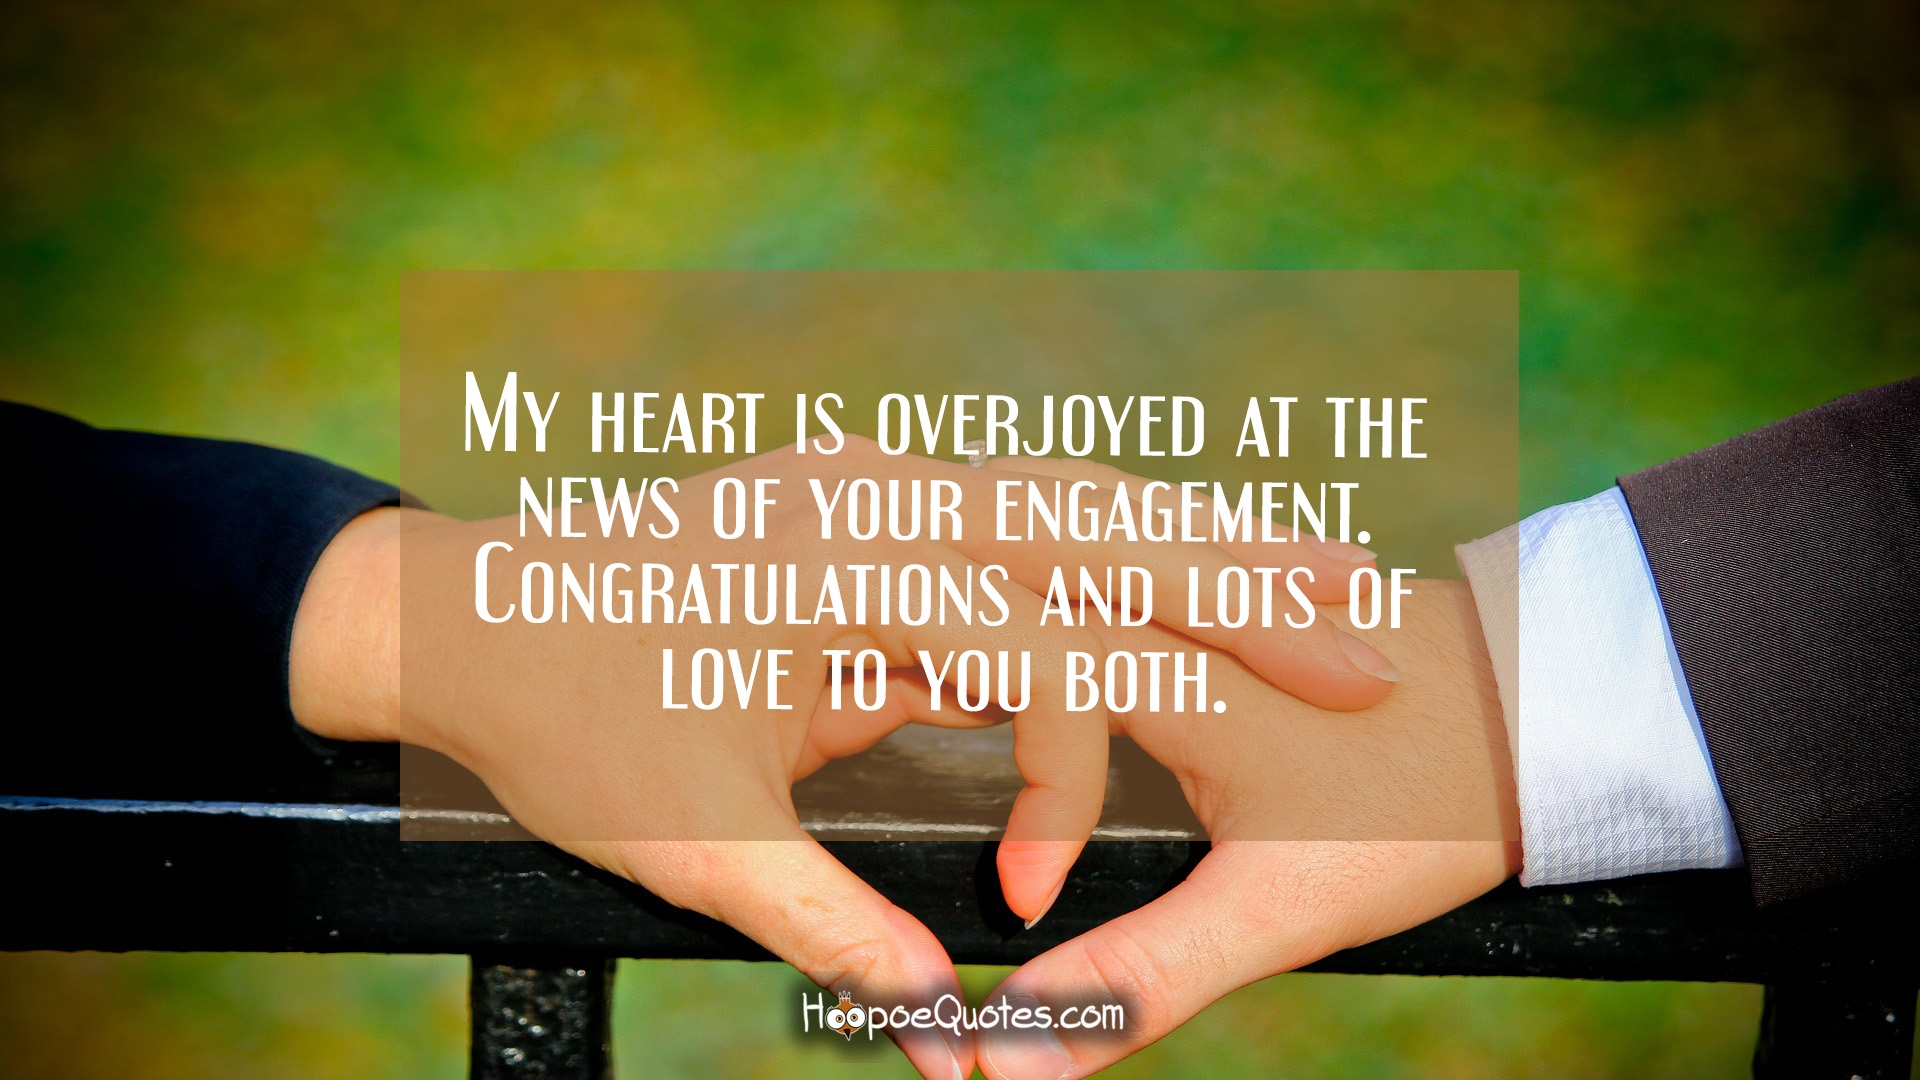 My Heart Is Overjoyed At The News Of Your Engagement Congratulations And Lots Of Love To You